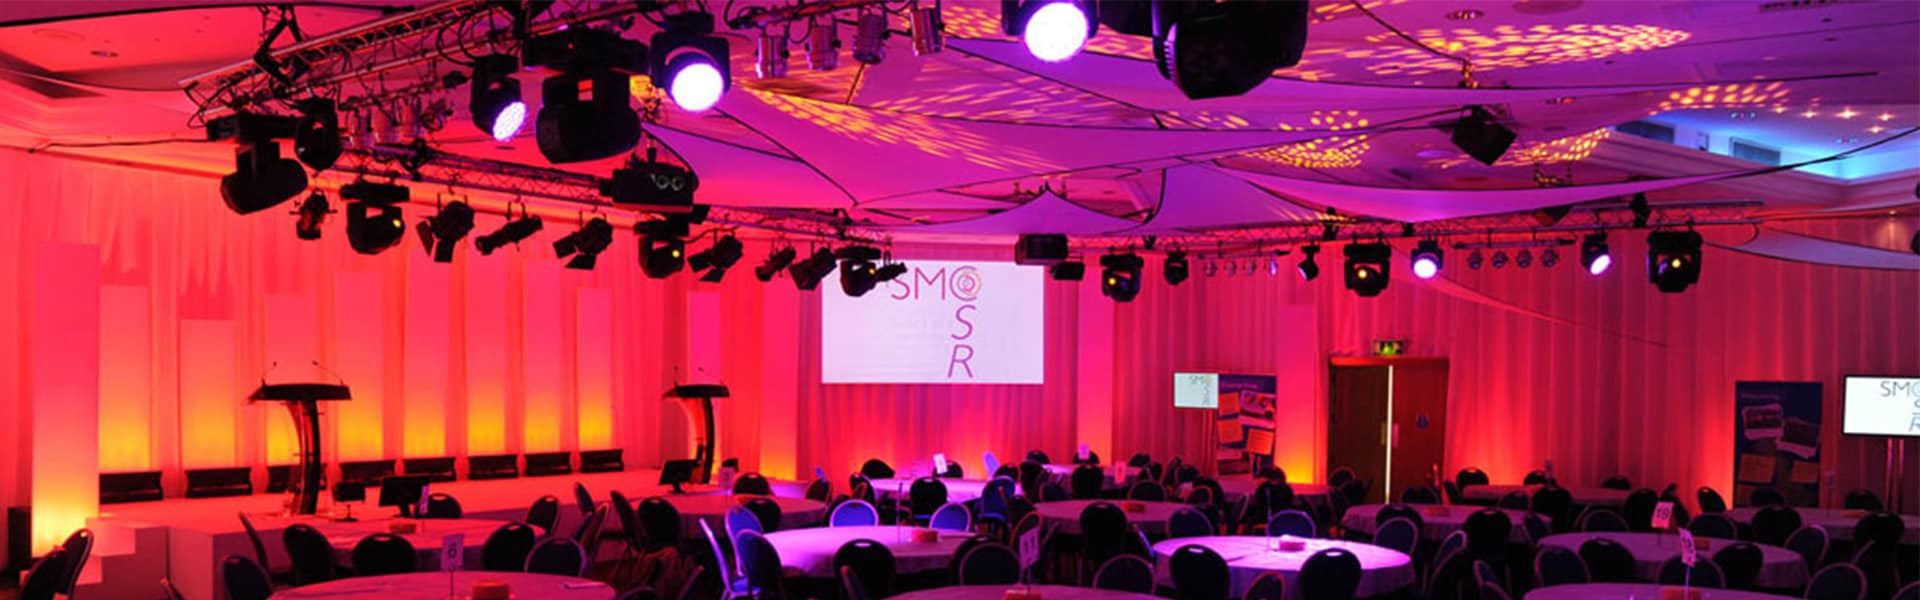 Audio visual, truss, lighting, moving heads, martin mac aura, conference, av, summit, presentation, product launch, projectors, screens, led video walls, speakers, line array, staging